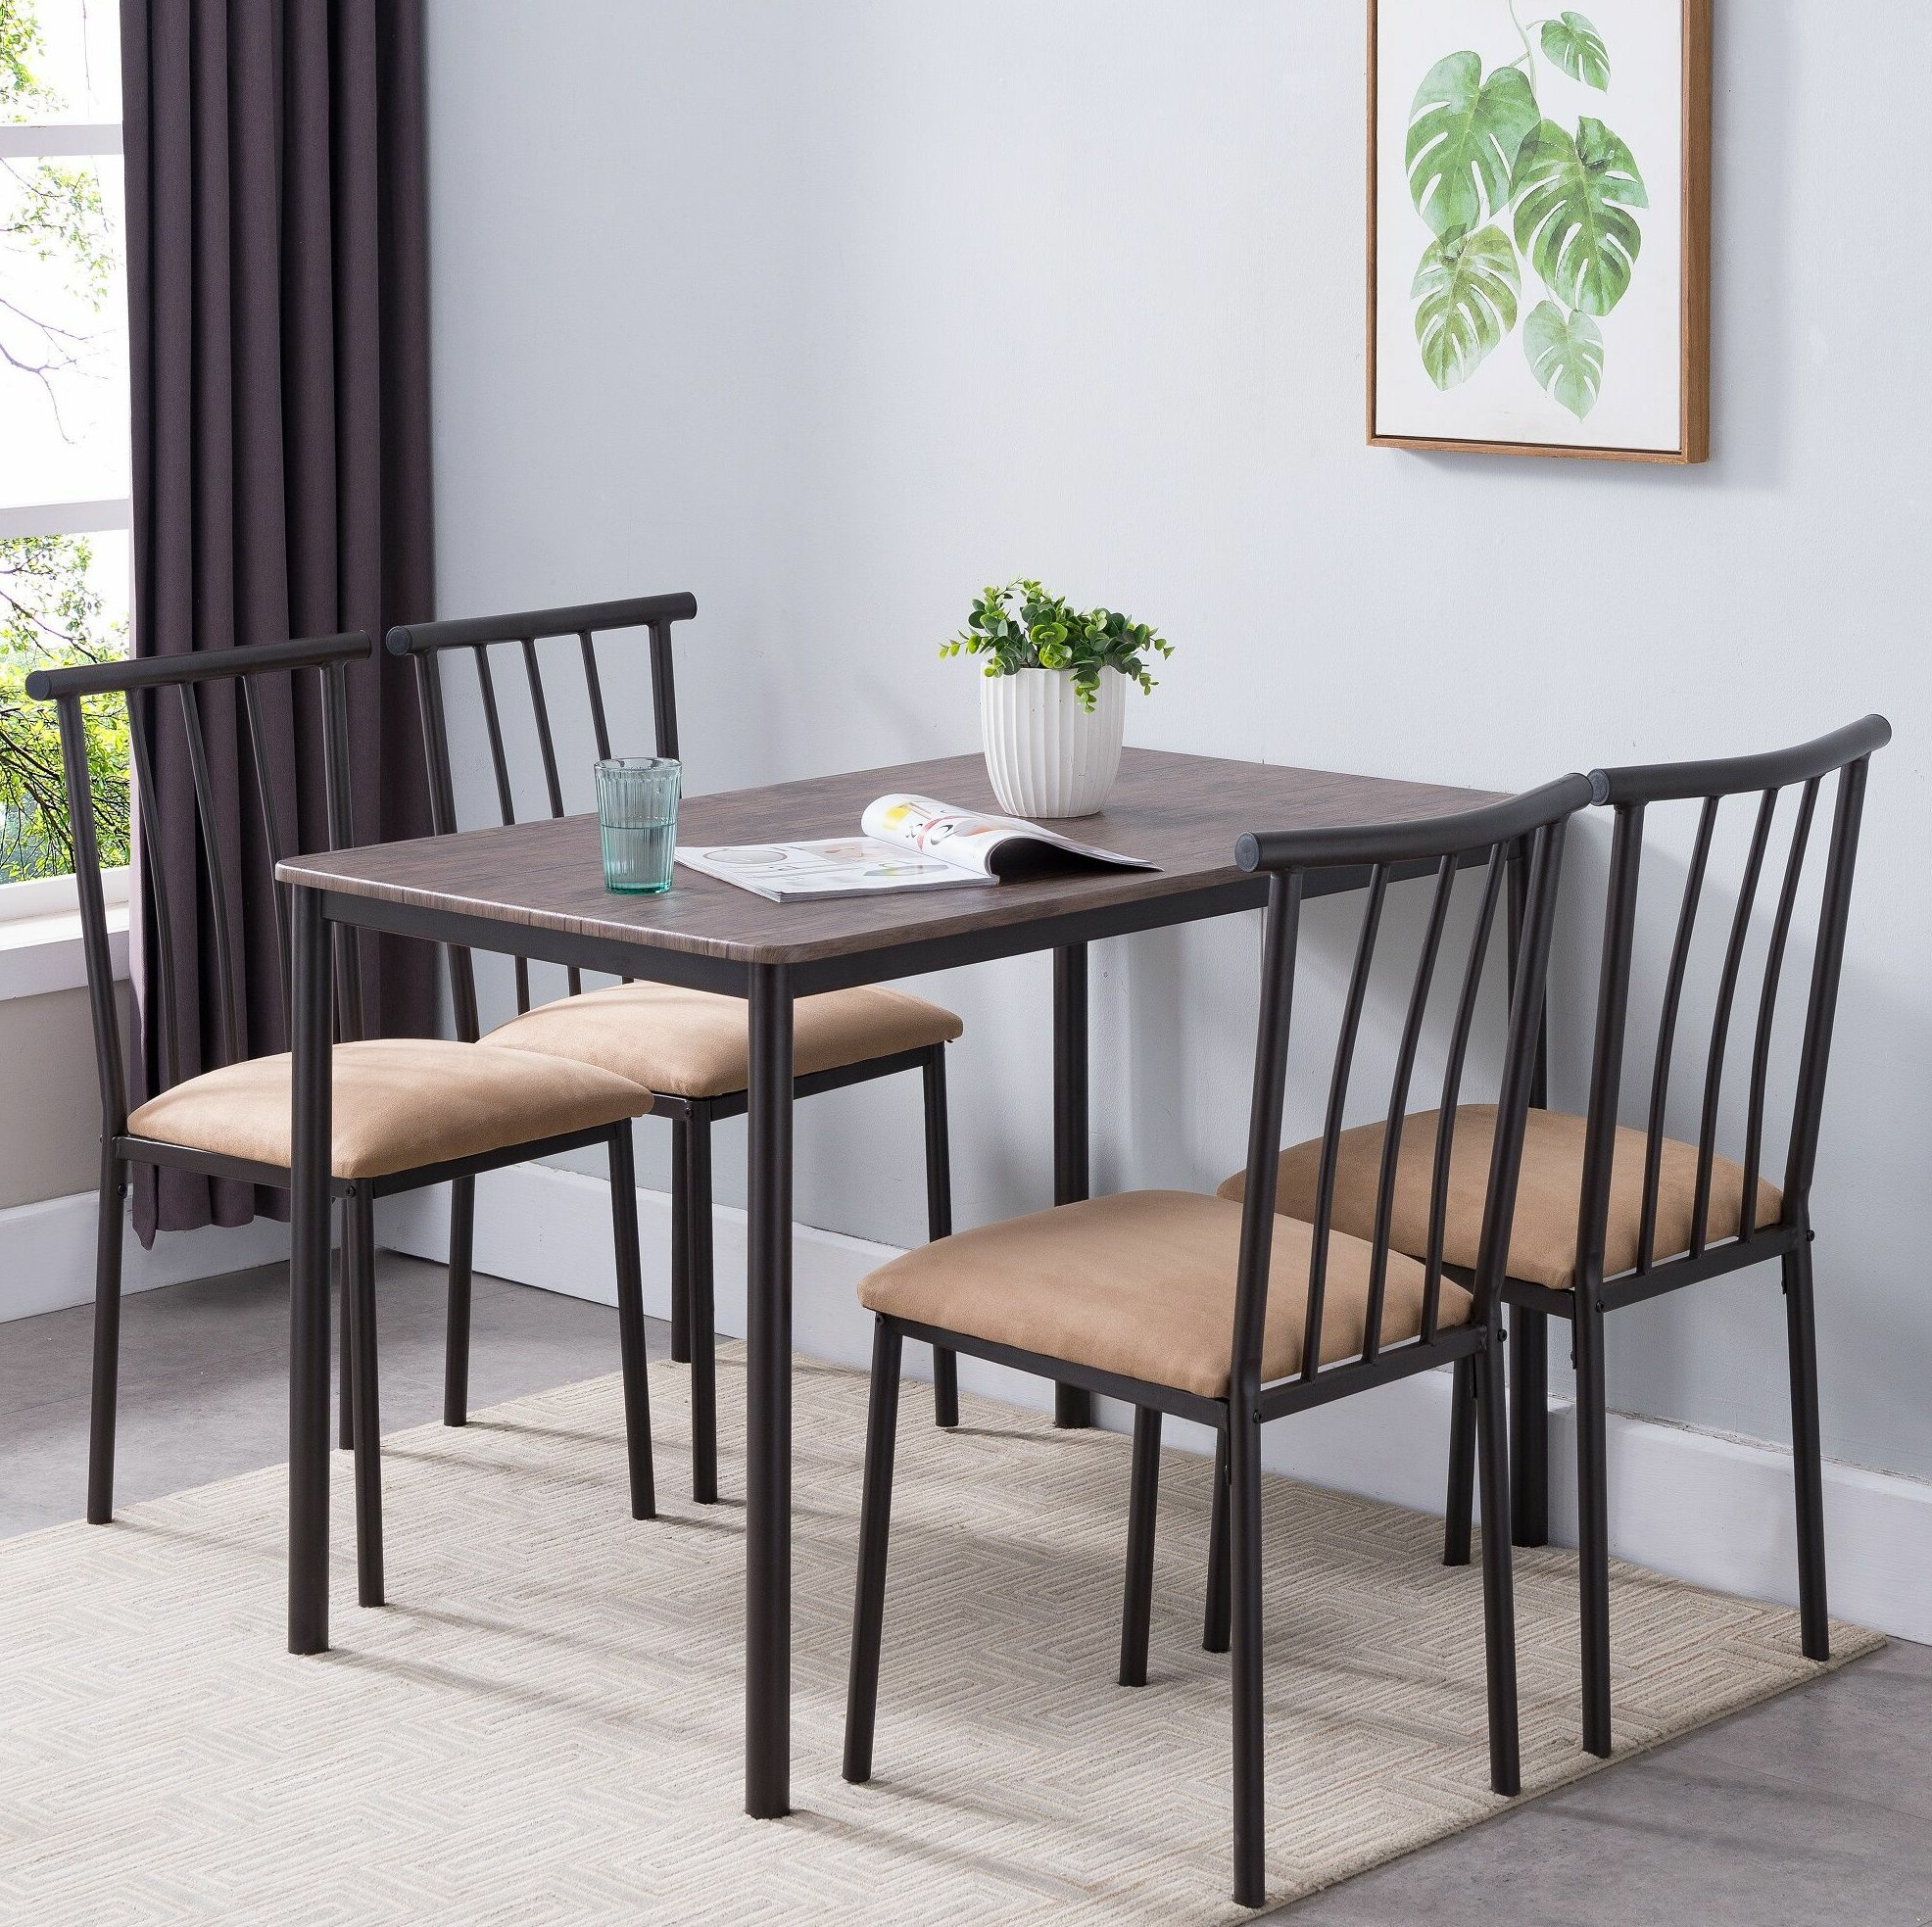 Widely Used Pattonsburg 5 Piece Dining Sets Inside Stclair 5 Piece Dining Set (View 20 of 20)